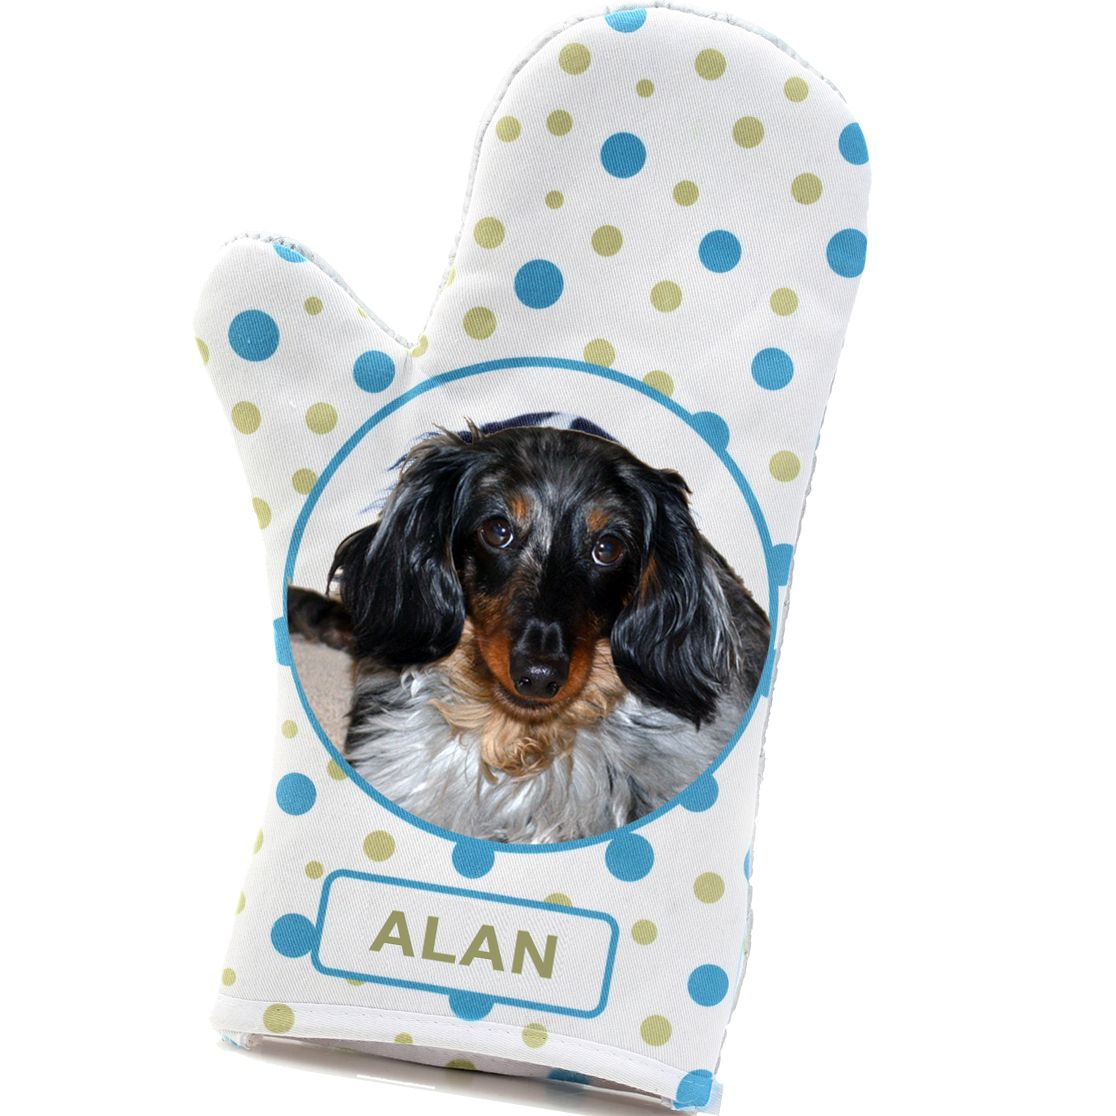 A Personalized Oven Mitt for Mom! Personalized pet gifts